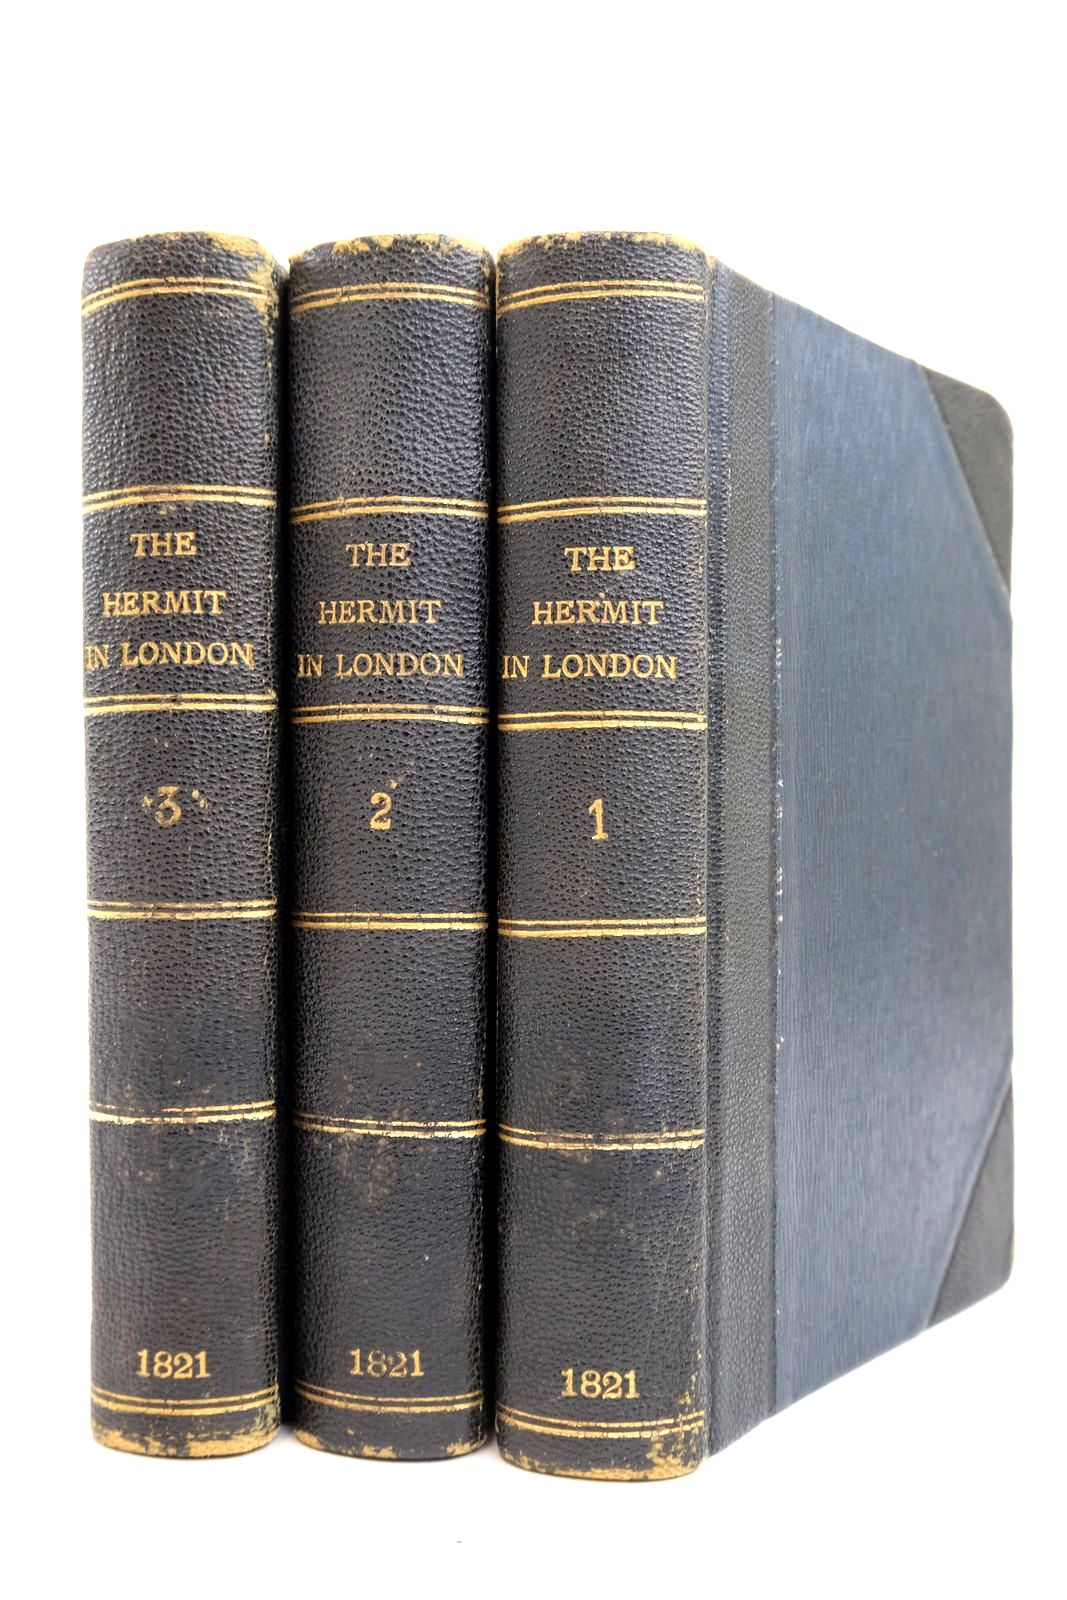 Photo of THE HERMIT IN LONDON; OR, SKETCHES OF ENGLISH MANNERS (3 VOLUMES) published by Henry Colburn And Co. (STOCK CODE: 2134508)  for sale by Stella & Rose's Books